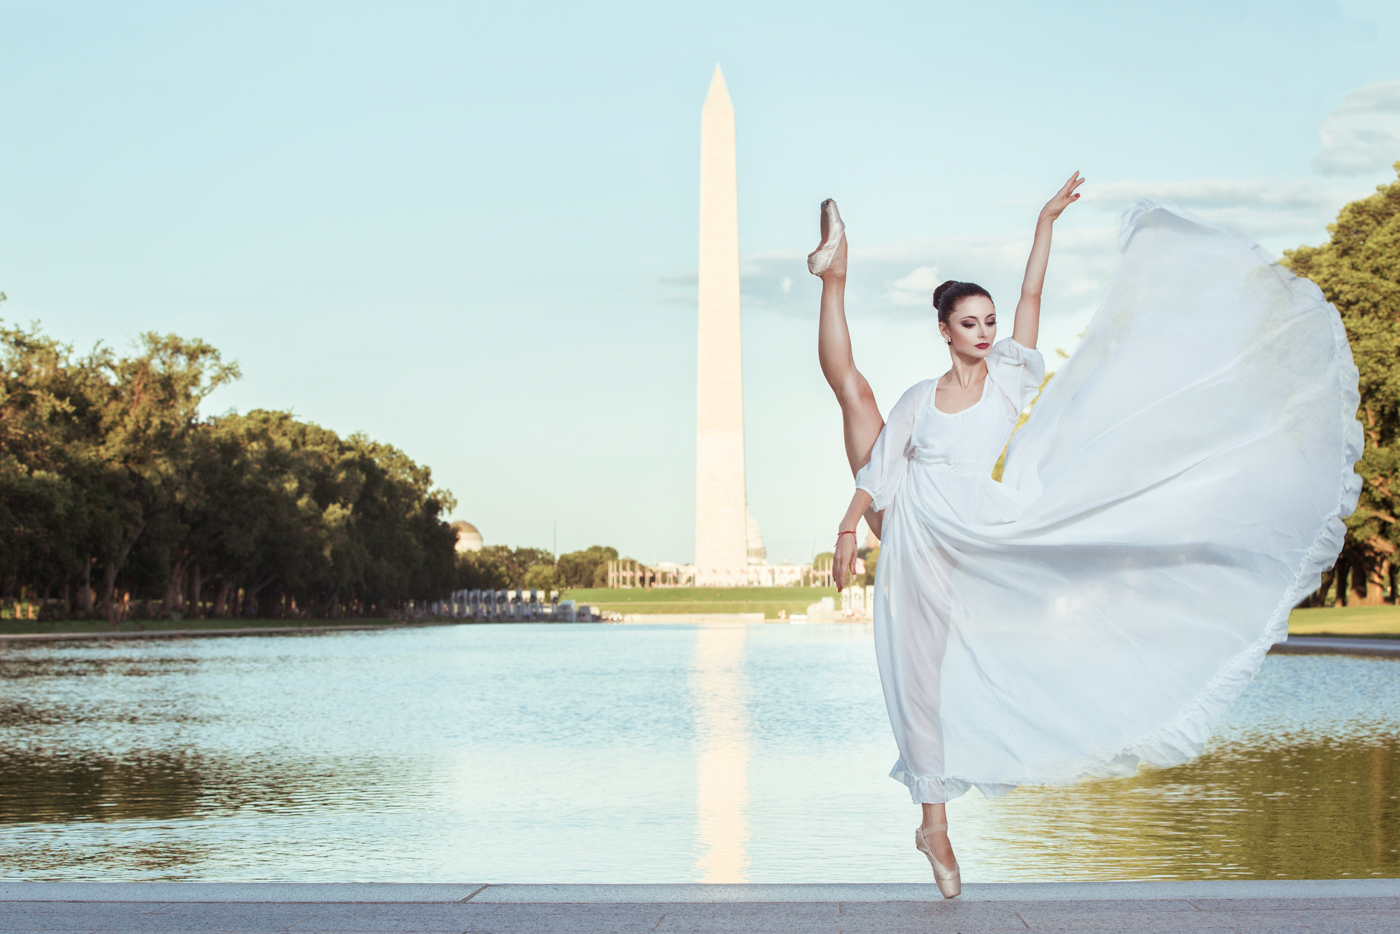 russian-ballet-dancer-on-the-street-of-washington-dc-ksenia-pro-photography-2